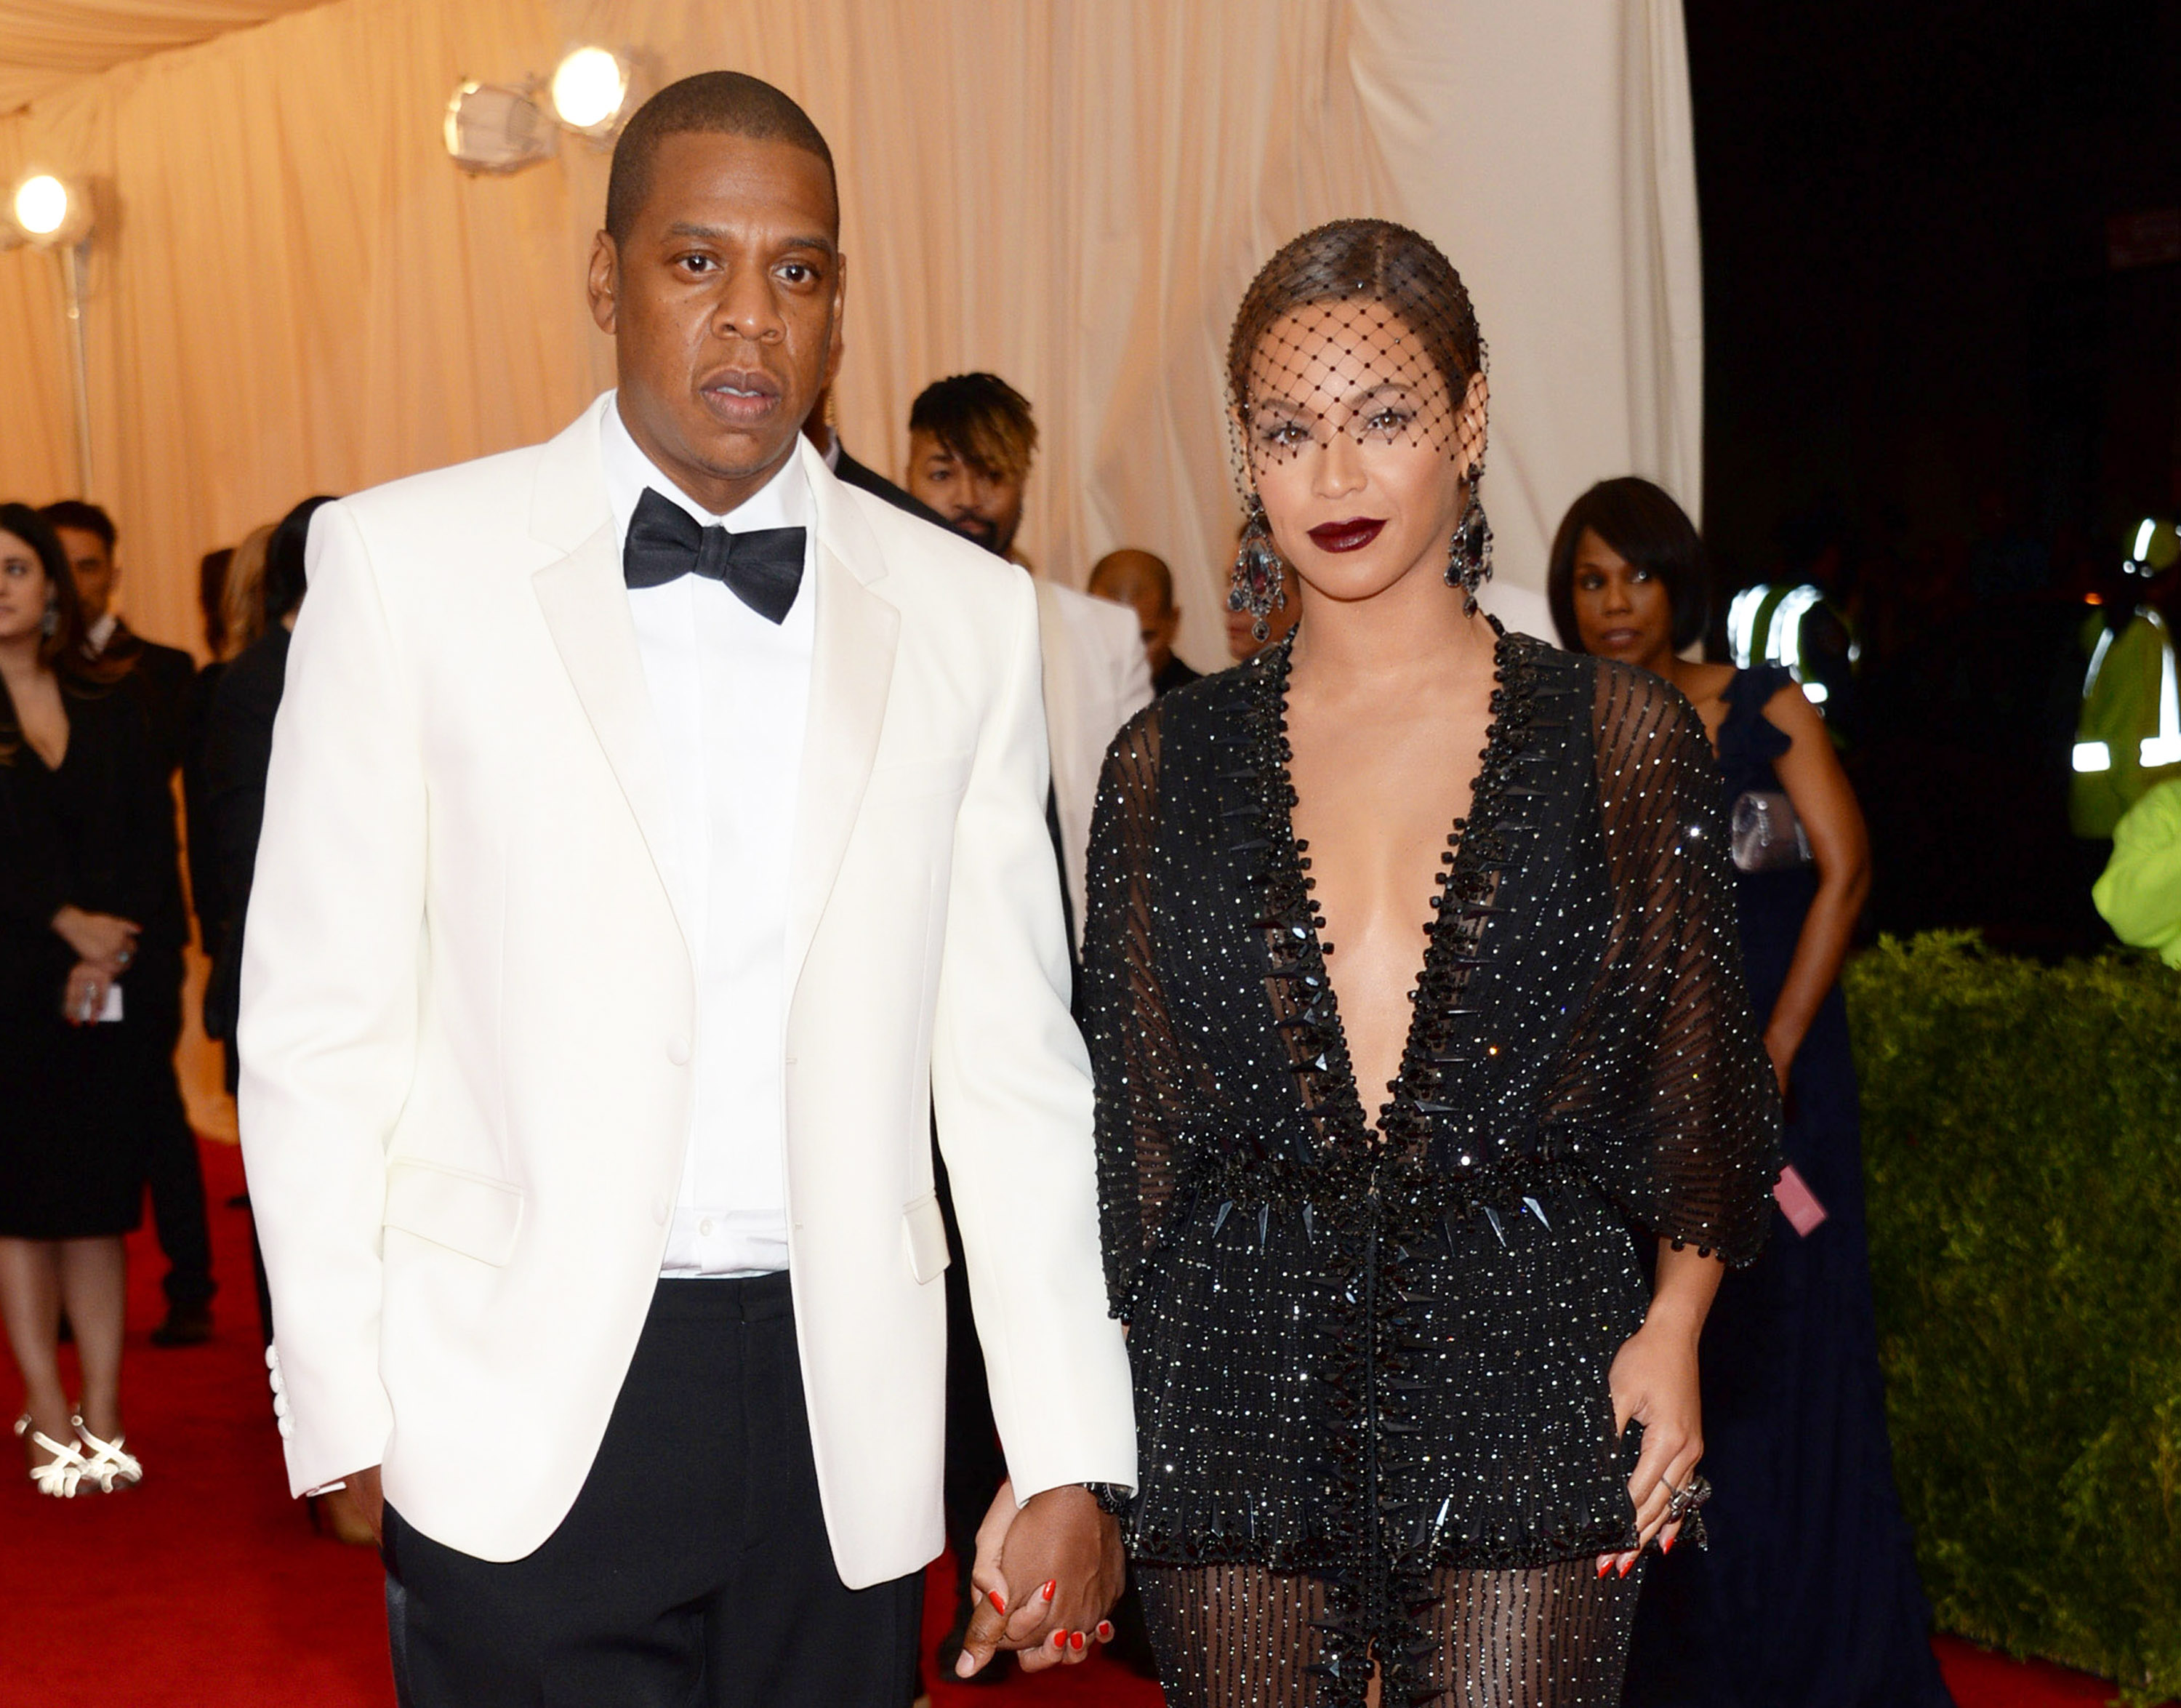 Jay Z and Beyonce at The Metropolitan Museum of Art's Costume Institute benefit gala.